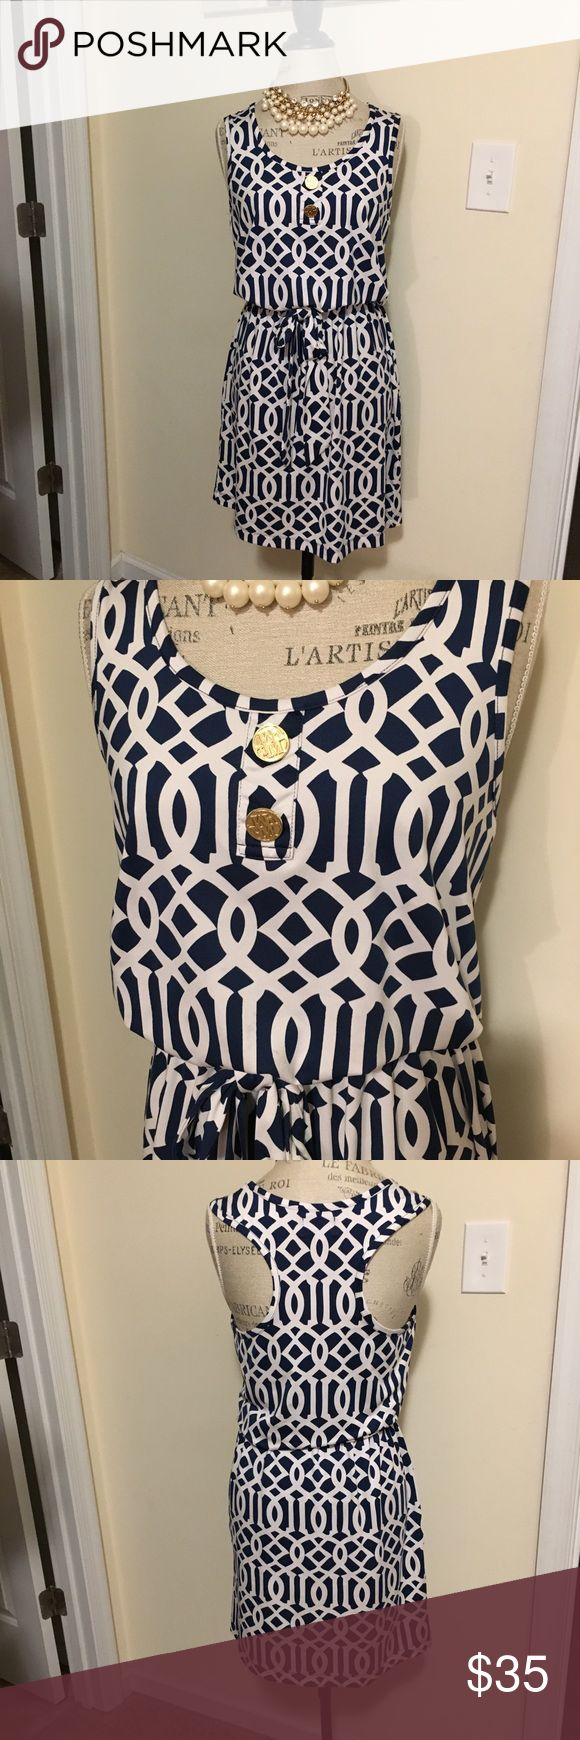 Mud Pie Blue White Dress Small w Tie Brand new without tags women's Mud Pie navy blue and white geometric design dress with matching waist tie. Available in a women's size small. Runs a little big for a small. Small to medium. Immediate shipping!! Mud Pie Dresses Midi